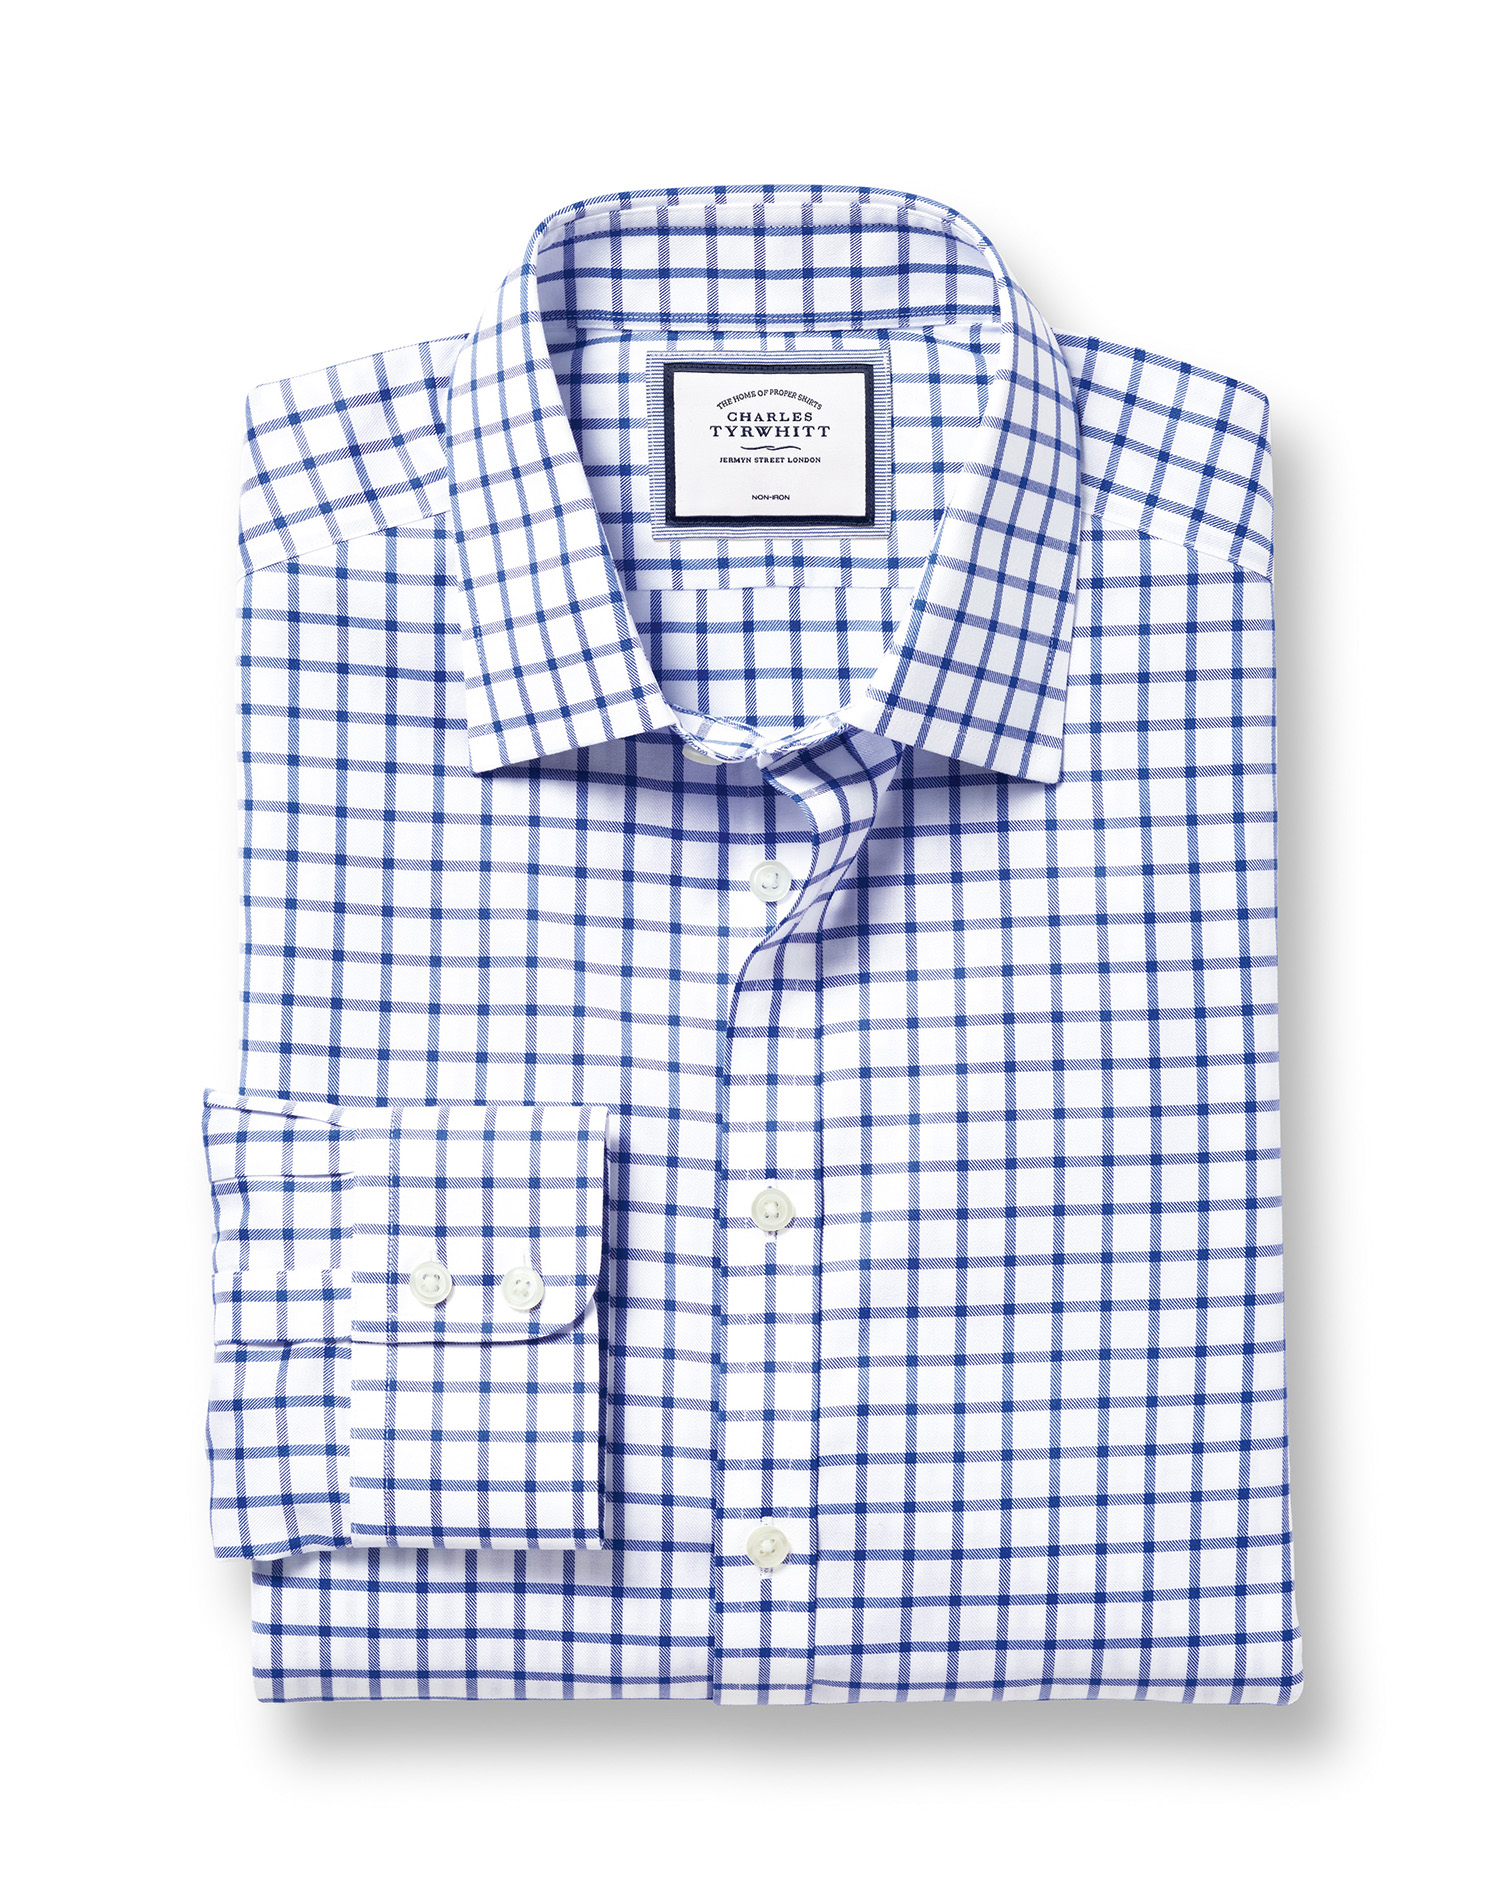 Extra Slim Fit Non-Iron Twill Grid Check Royal Blue Cotton Formal Shirt Single Cuff Size 17/33 by Ch